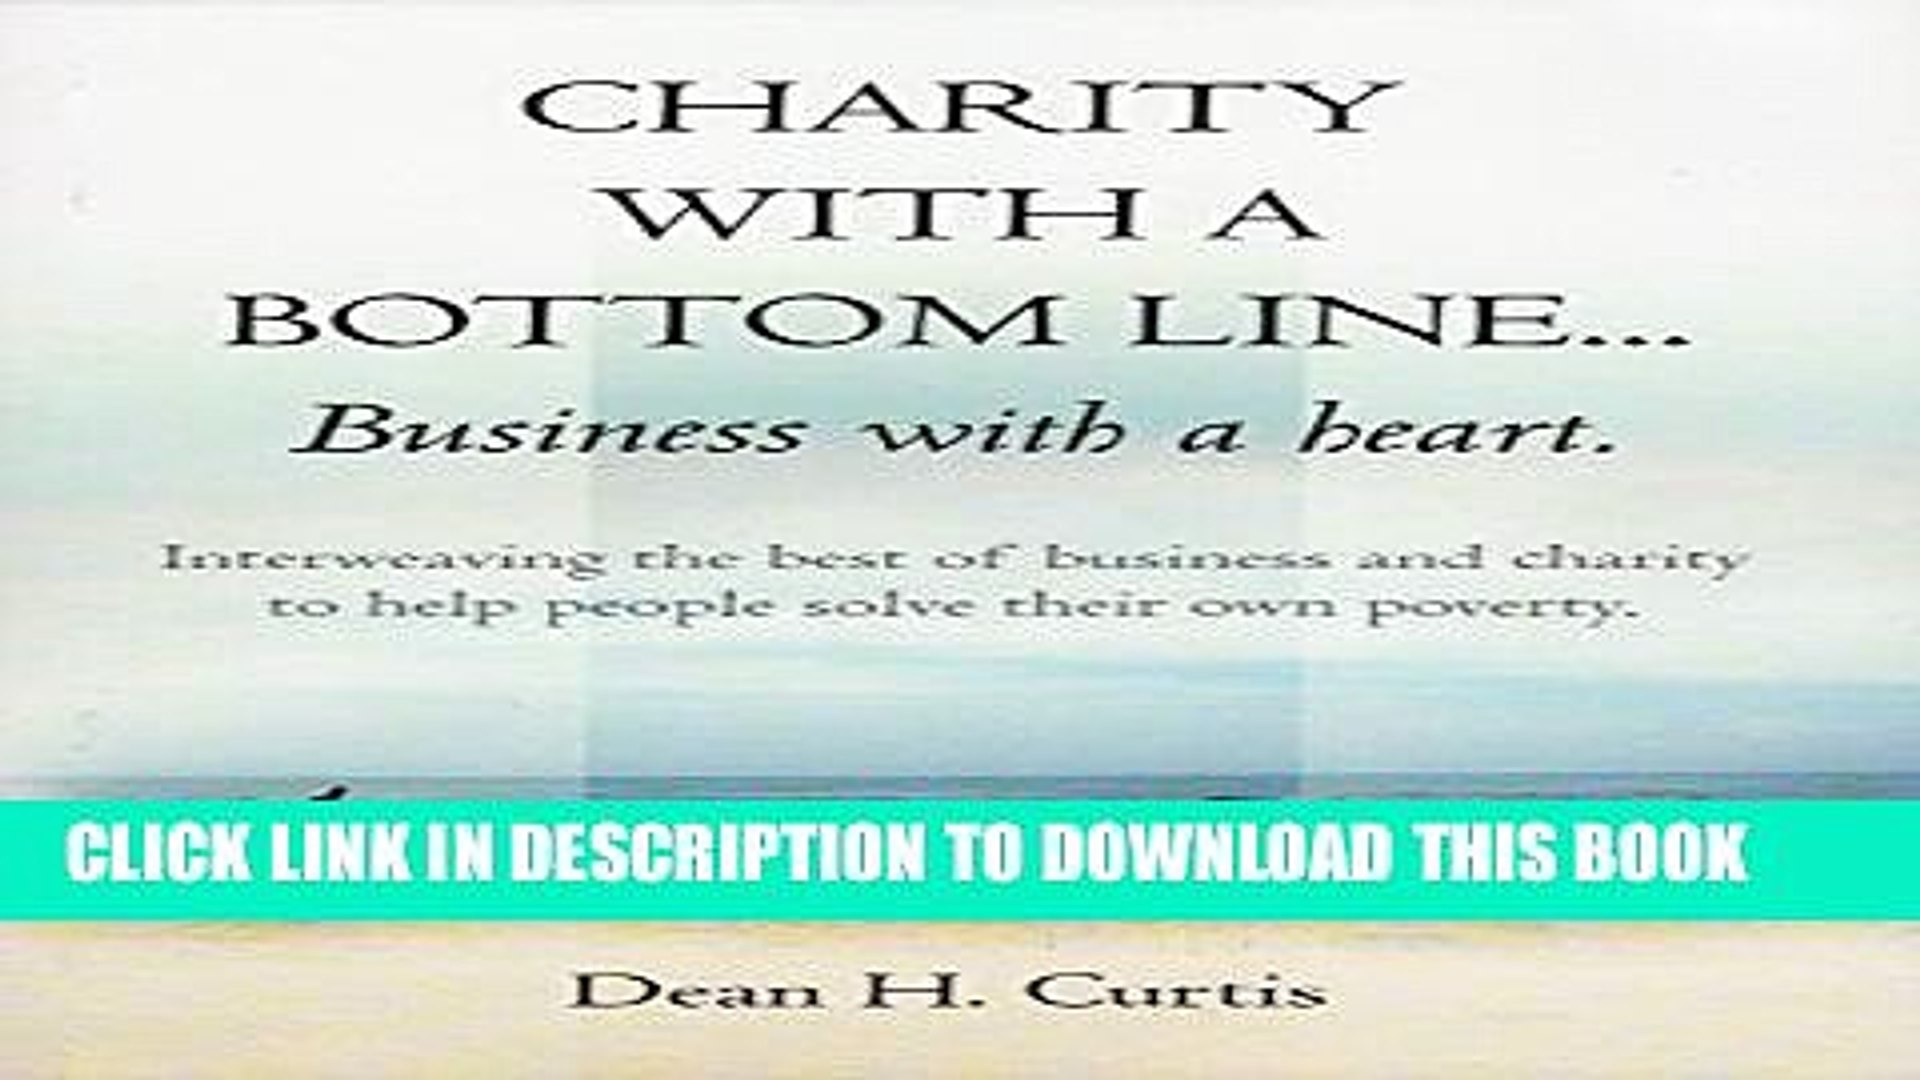 [New] Charity With A Bottom Line...Business With A Heart Exclusive Online